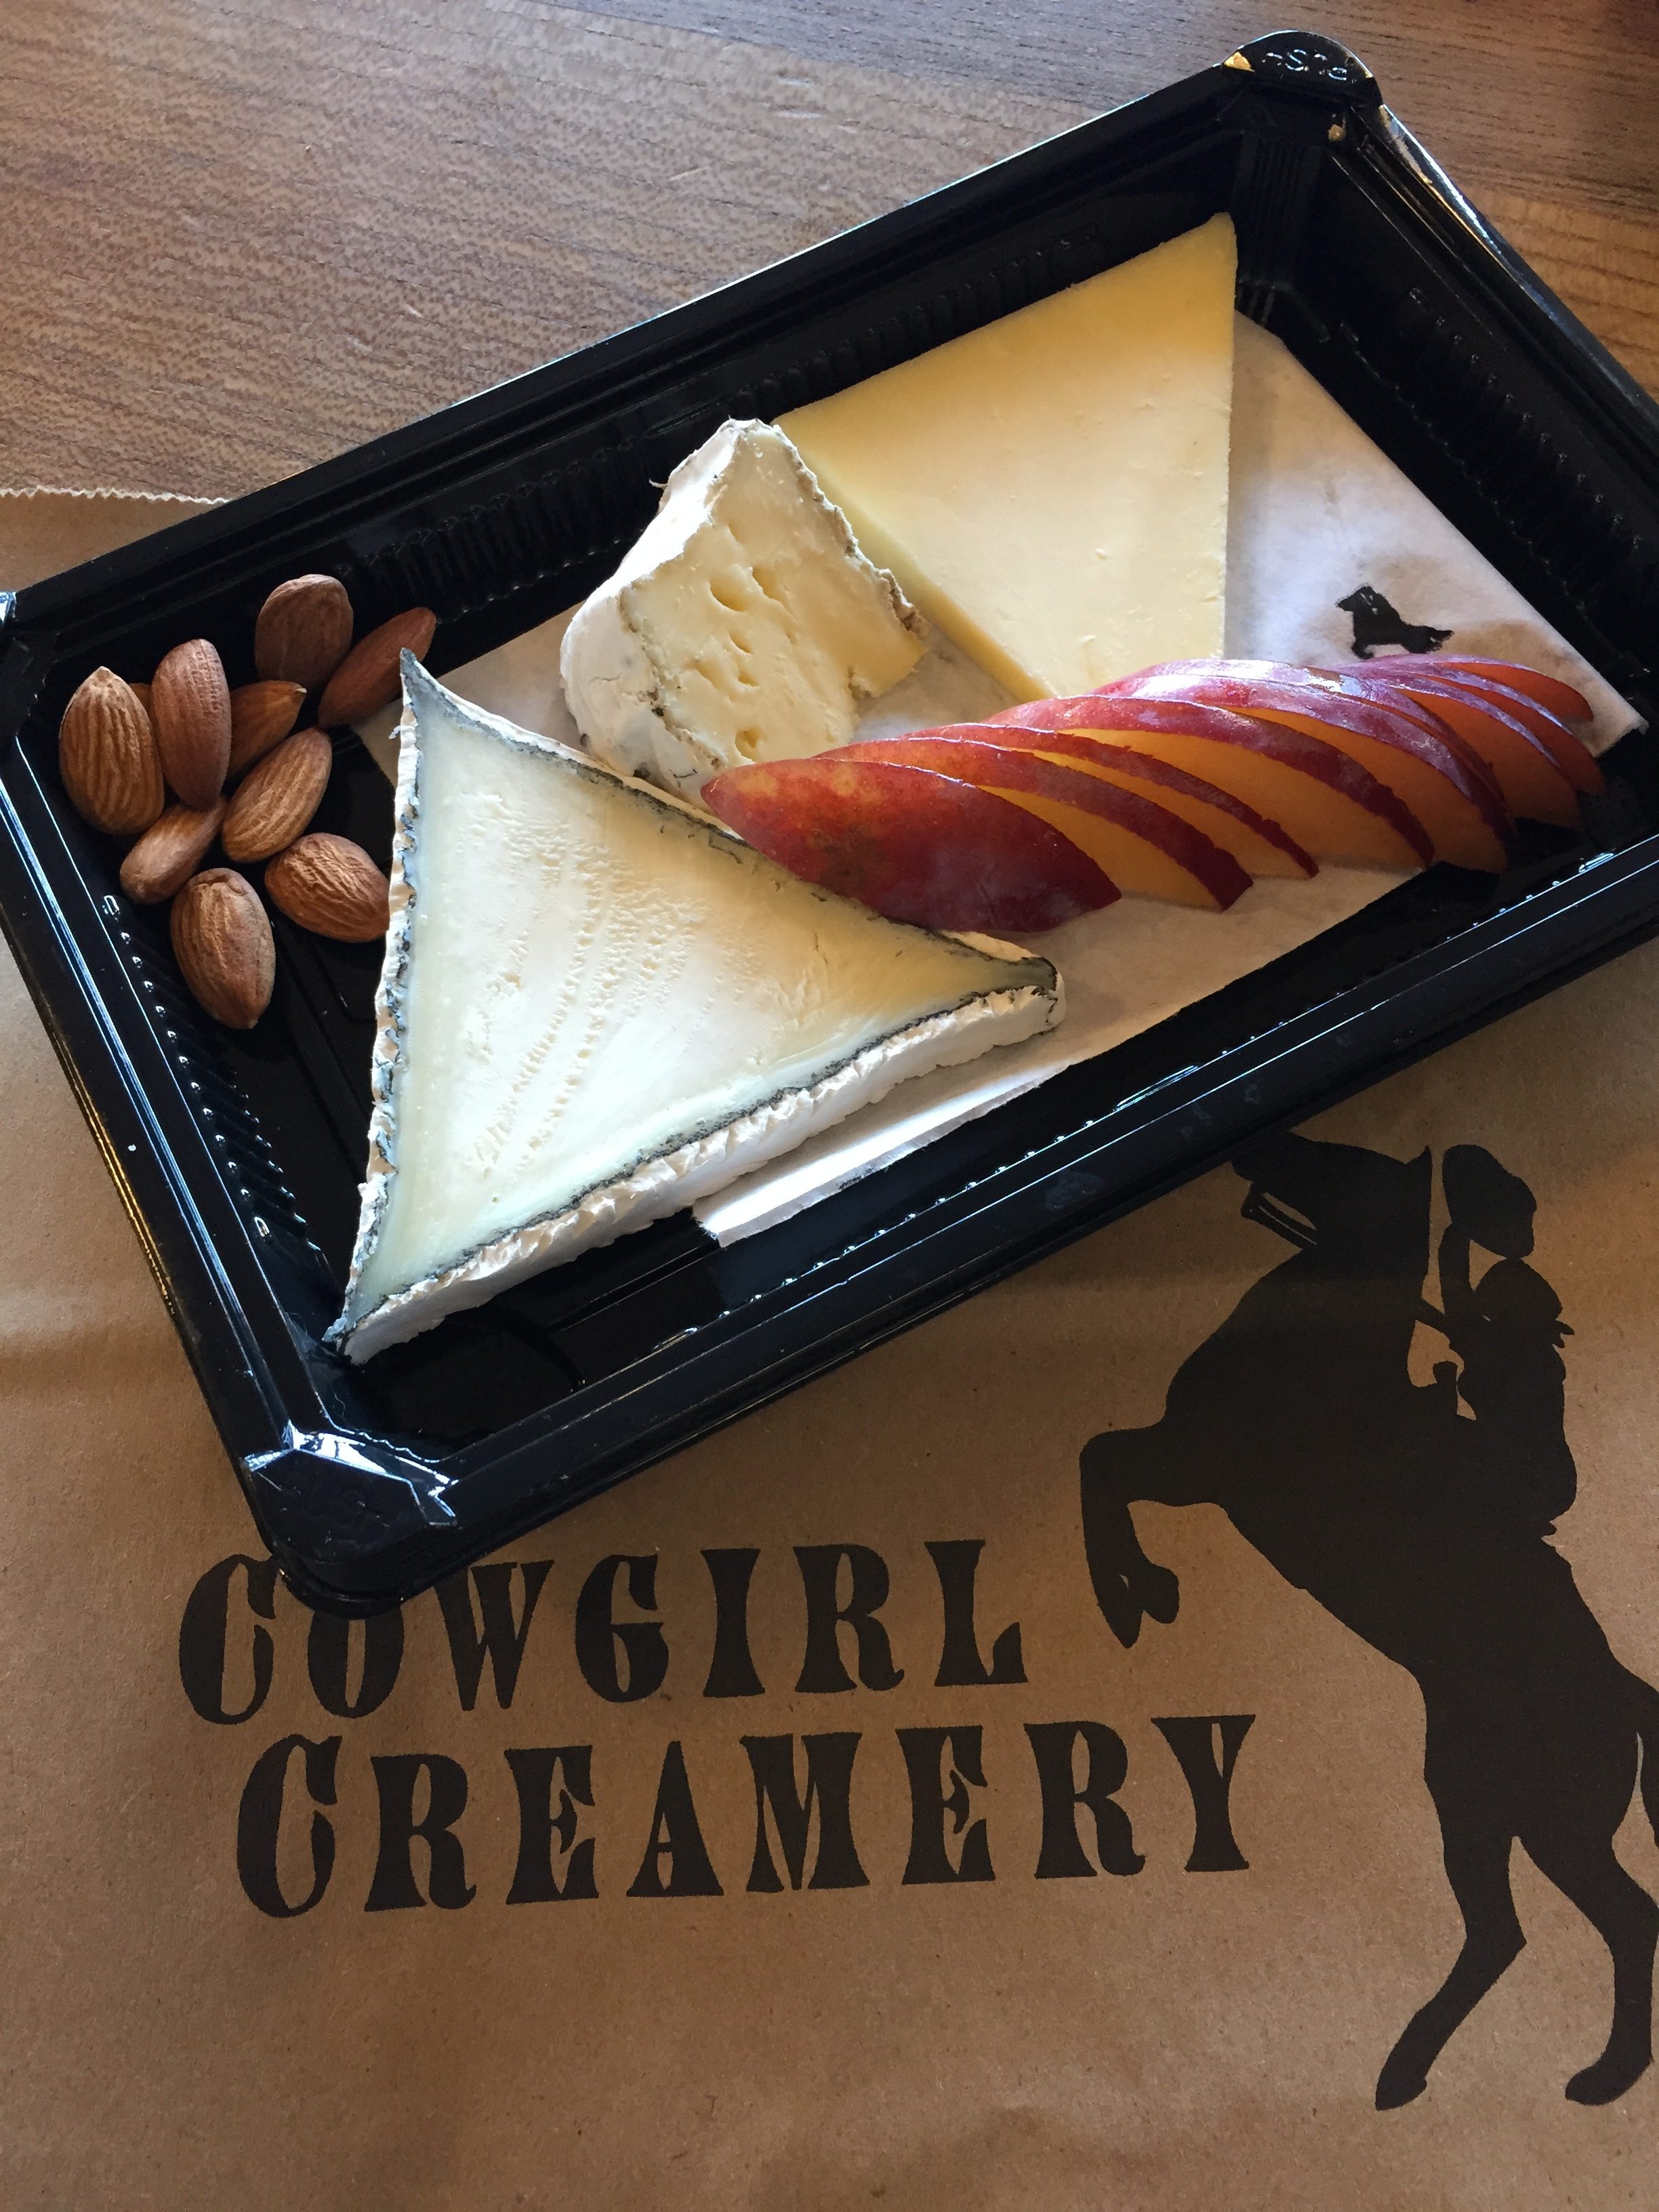 Artisanal Cheese Platter at Cowgirl Creamery